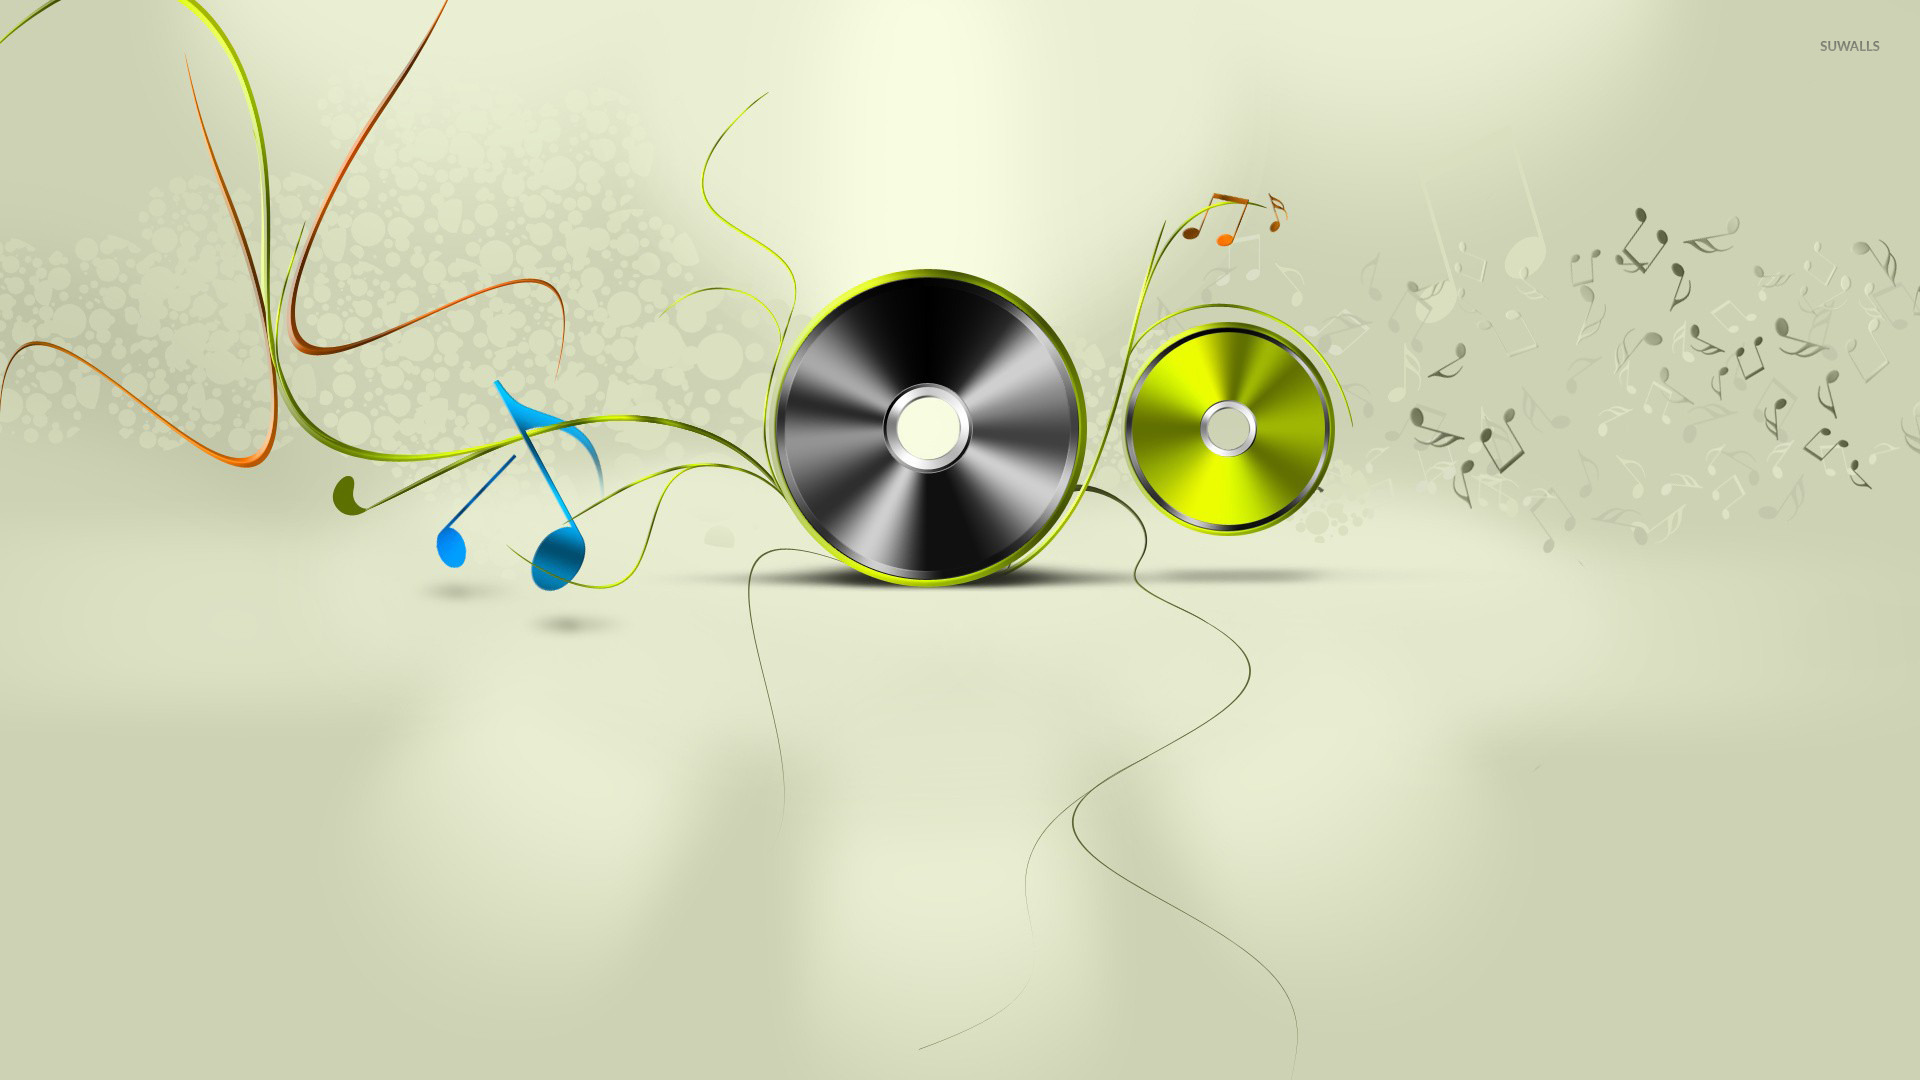 Discs And Notes Wallpaper Music Wallpapers 26249